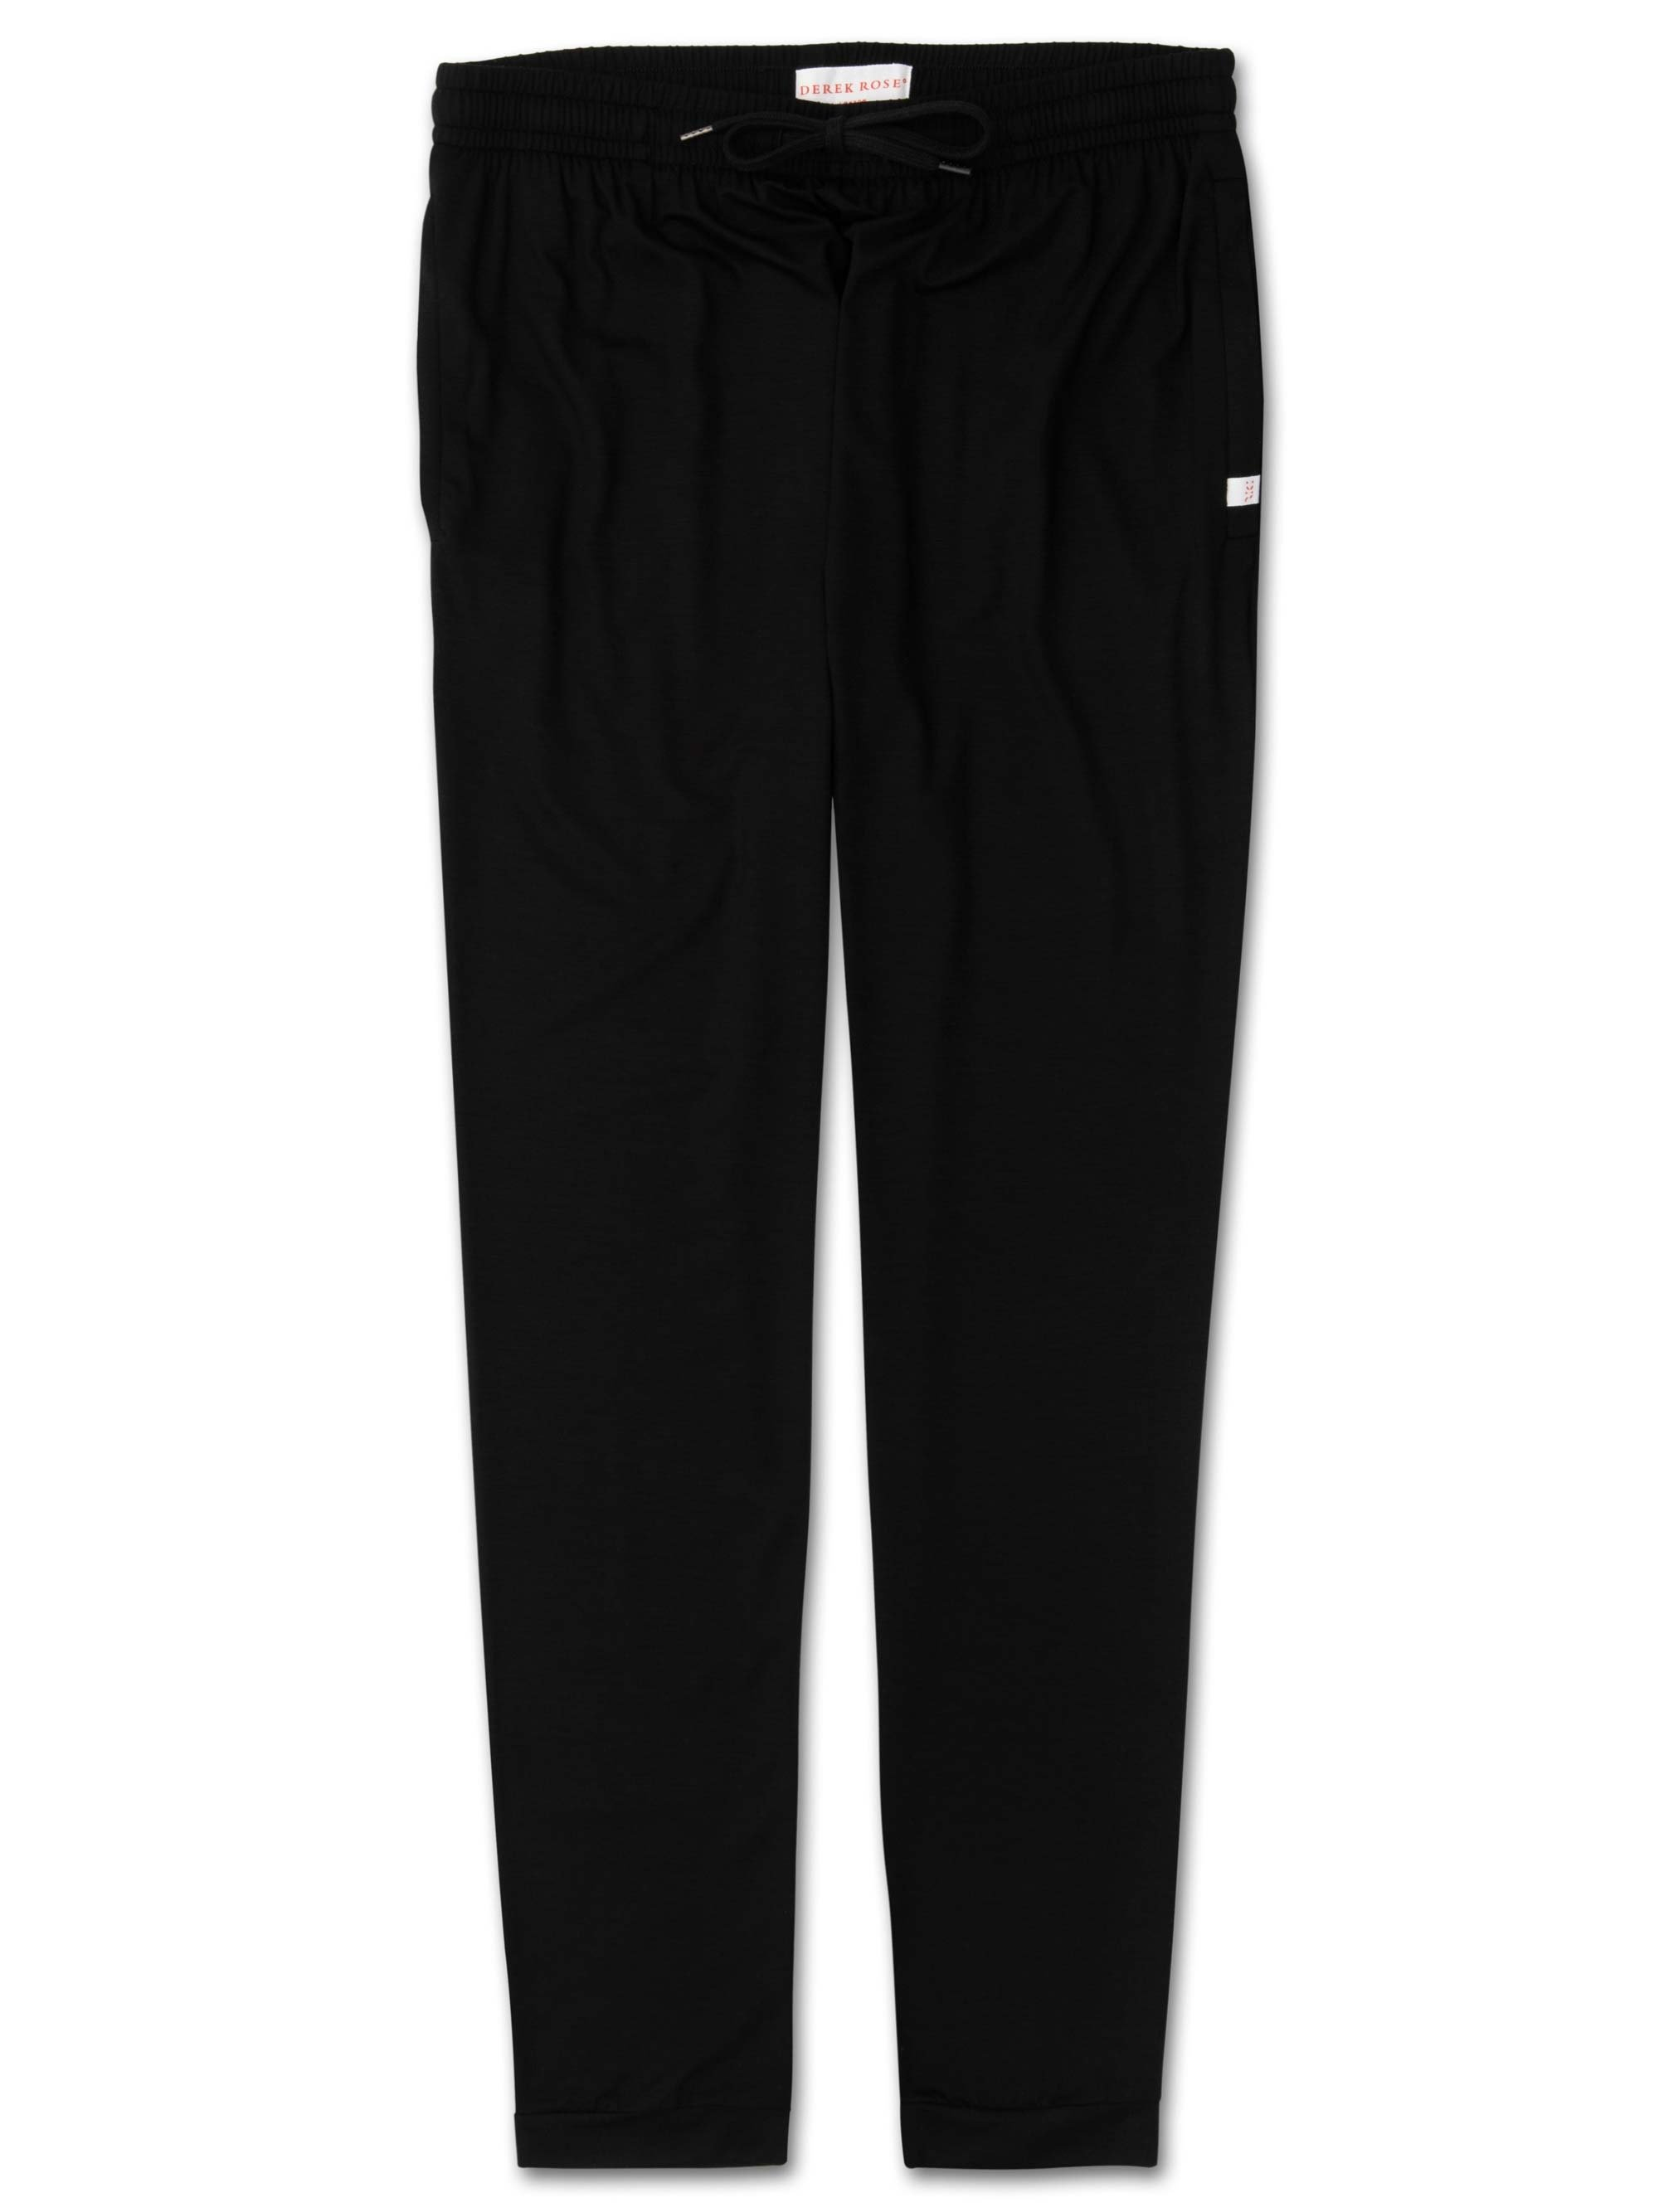 Men's Jersey Track Pants Basel Micro Modal Stretch Black